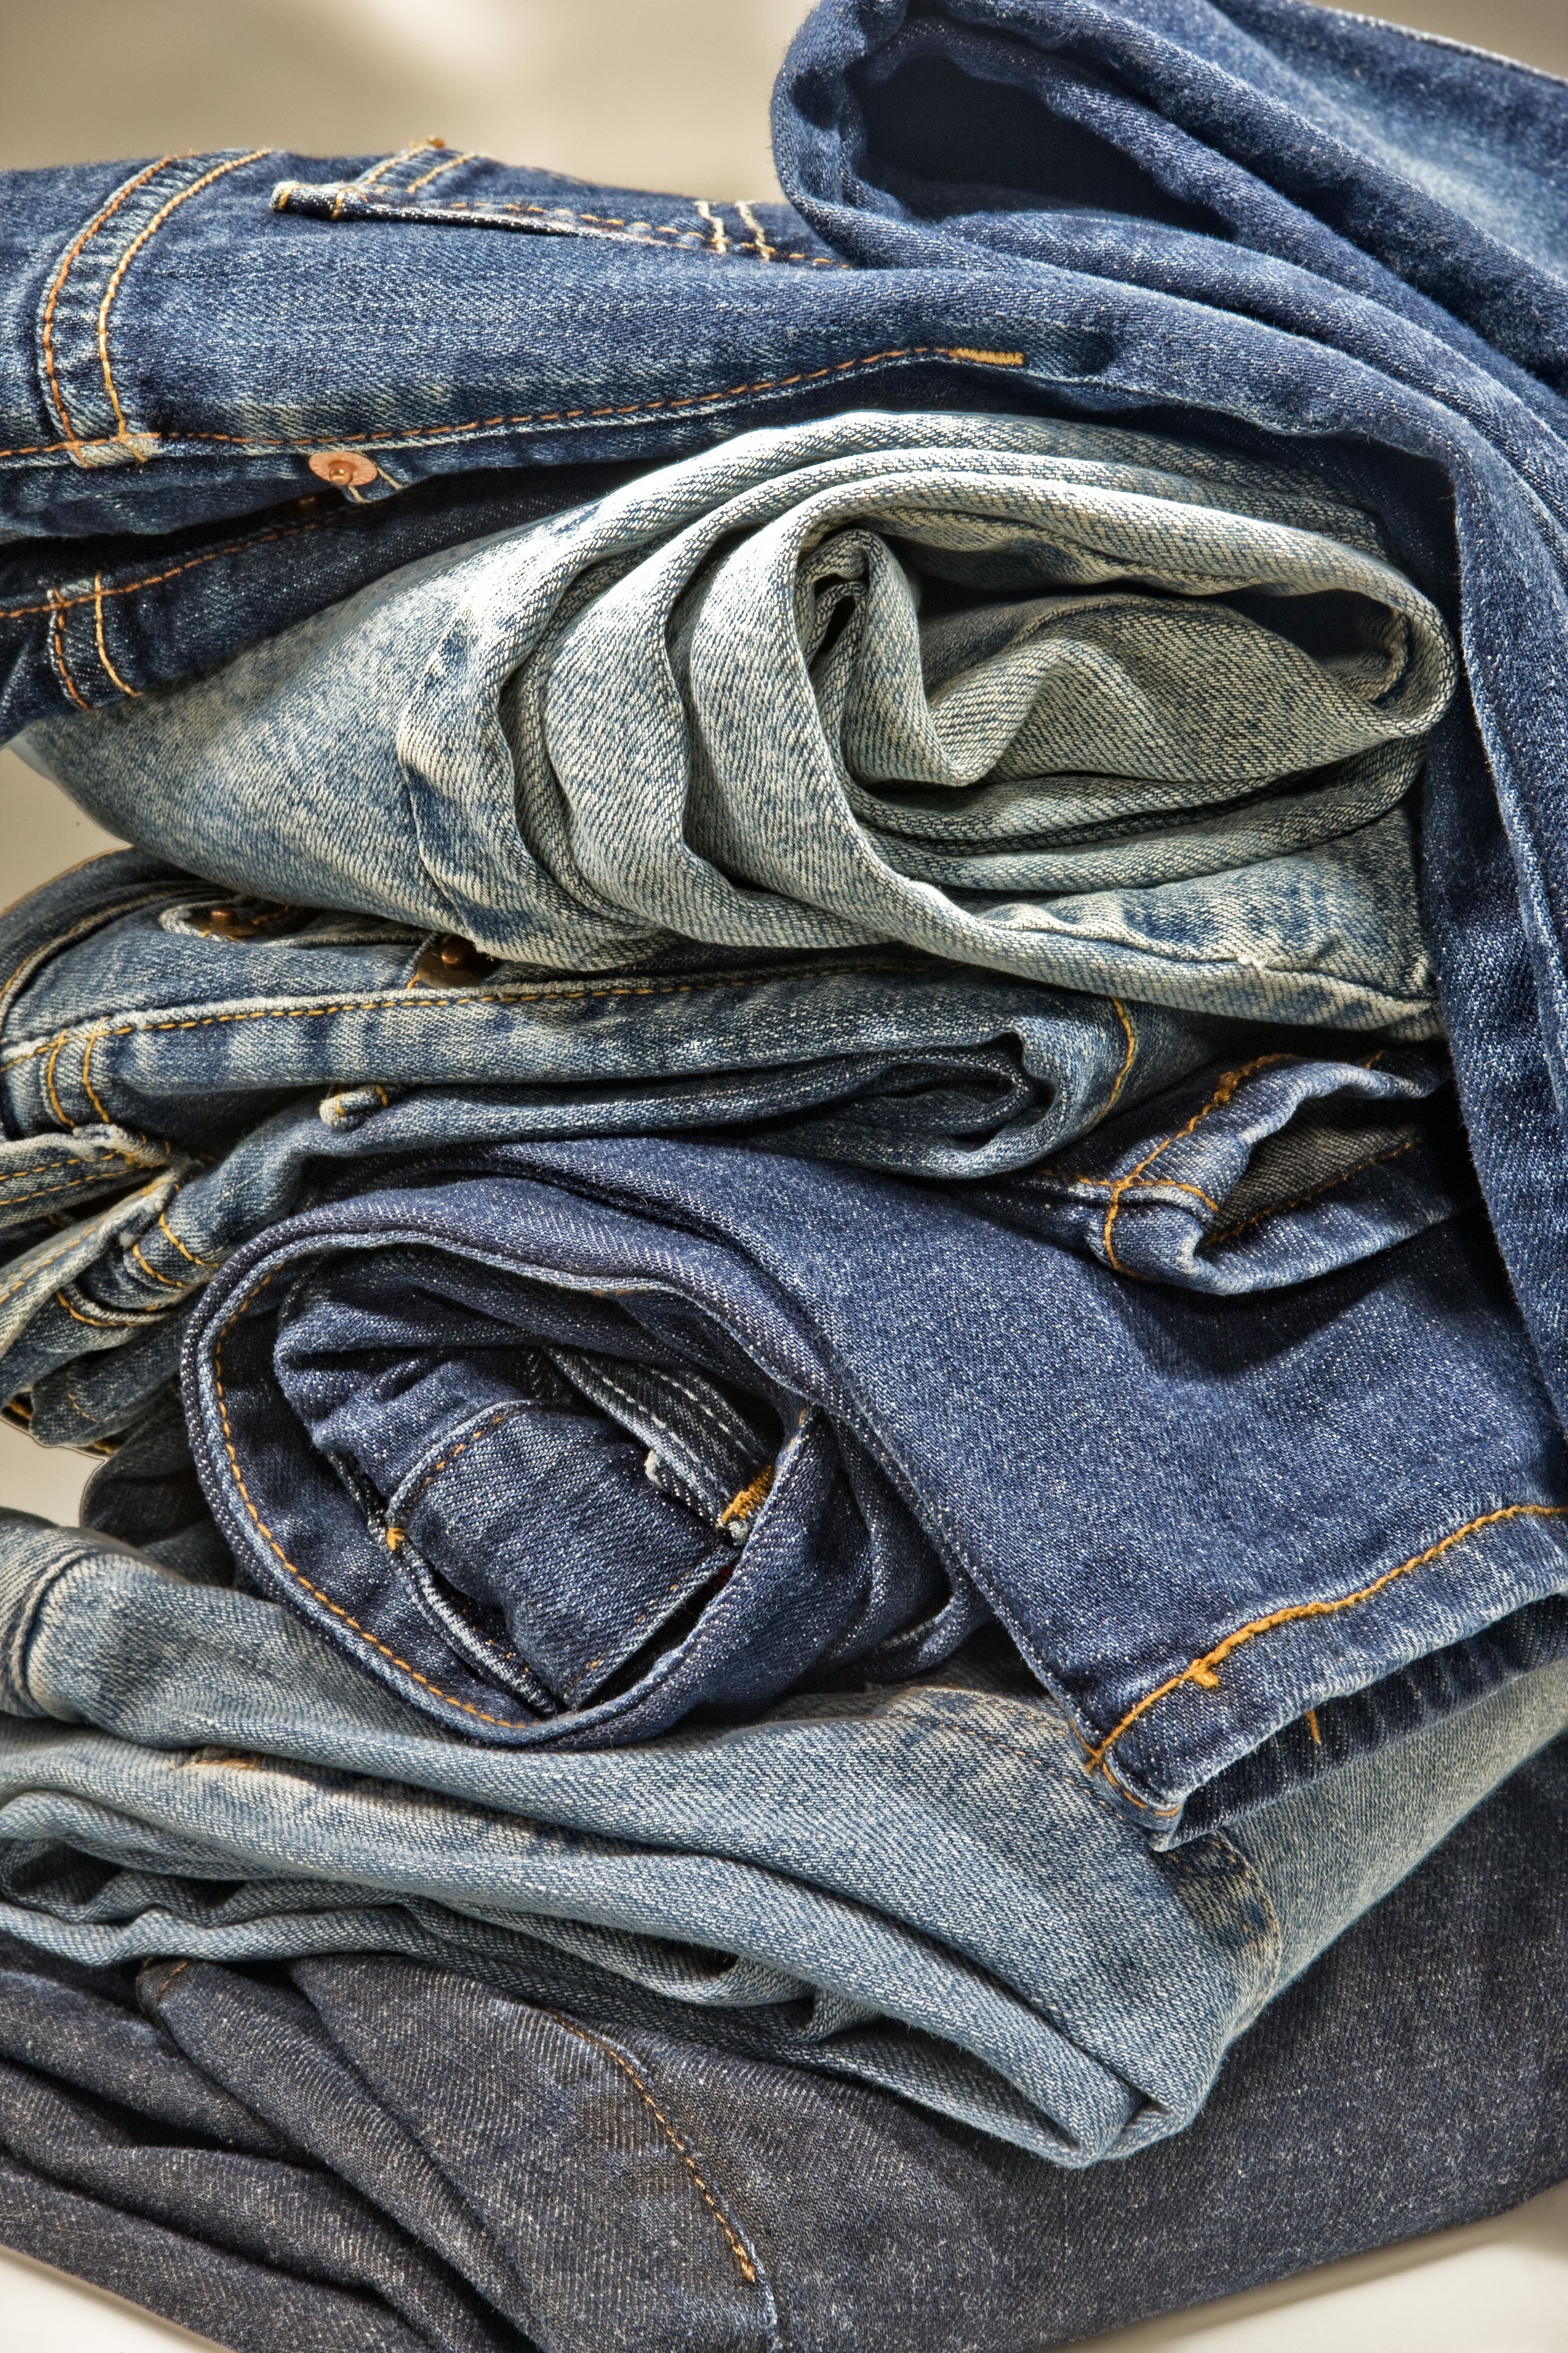 Free Sewing Patterns and Projects to Recycle Old Jeans